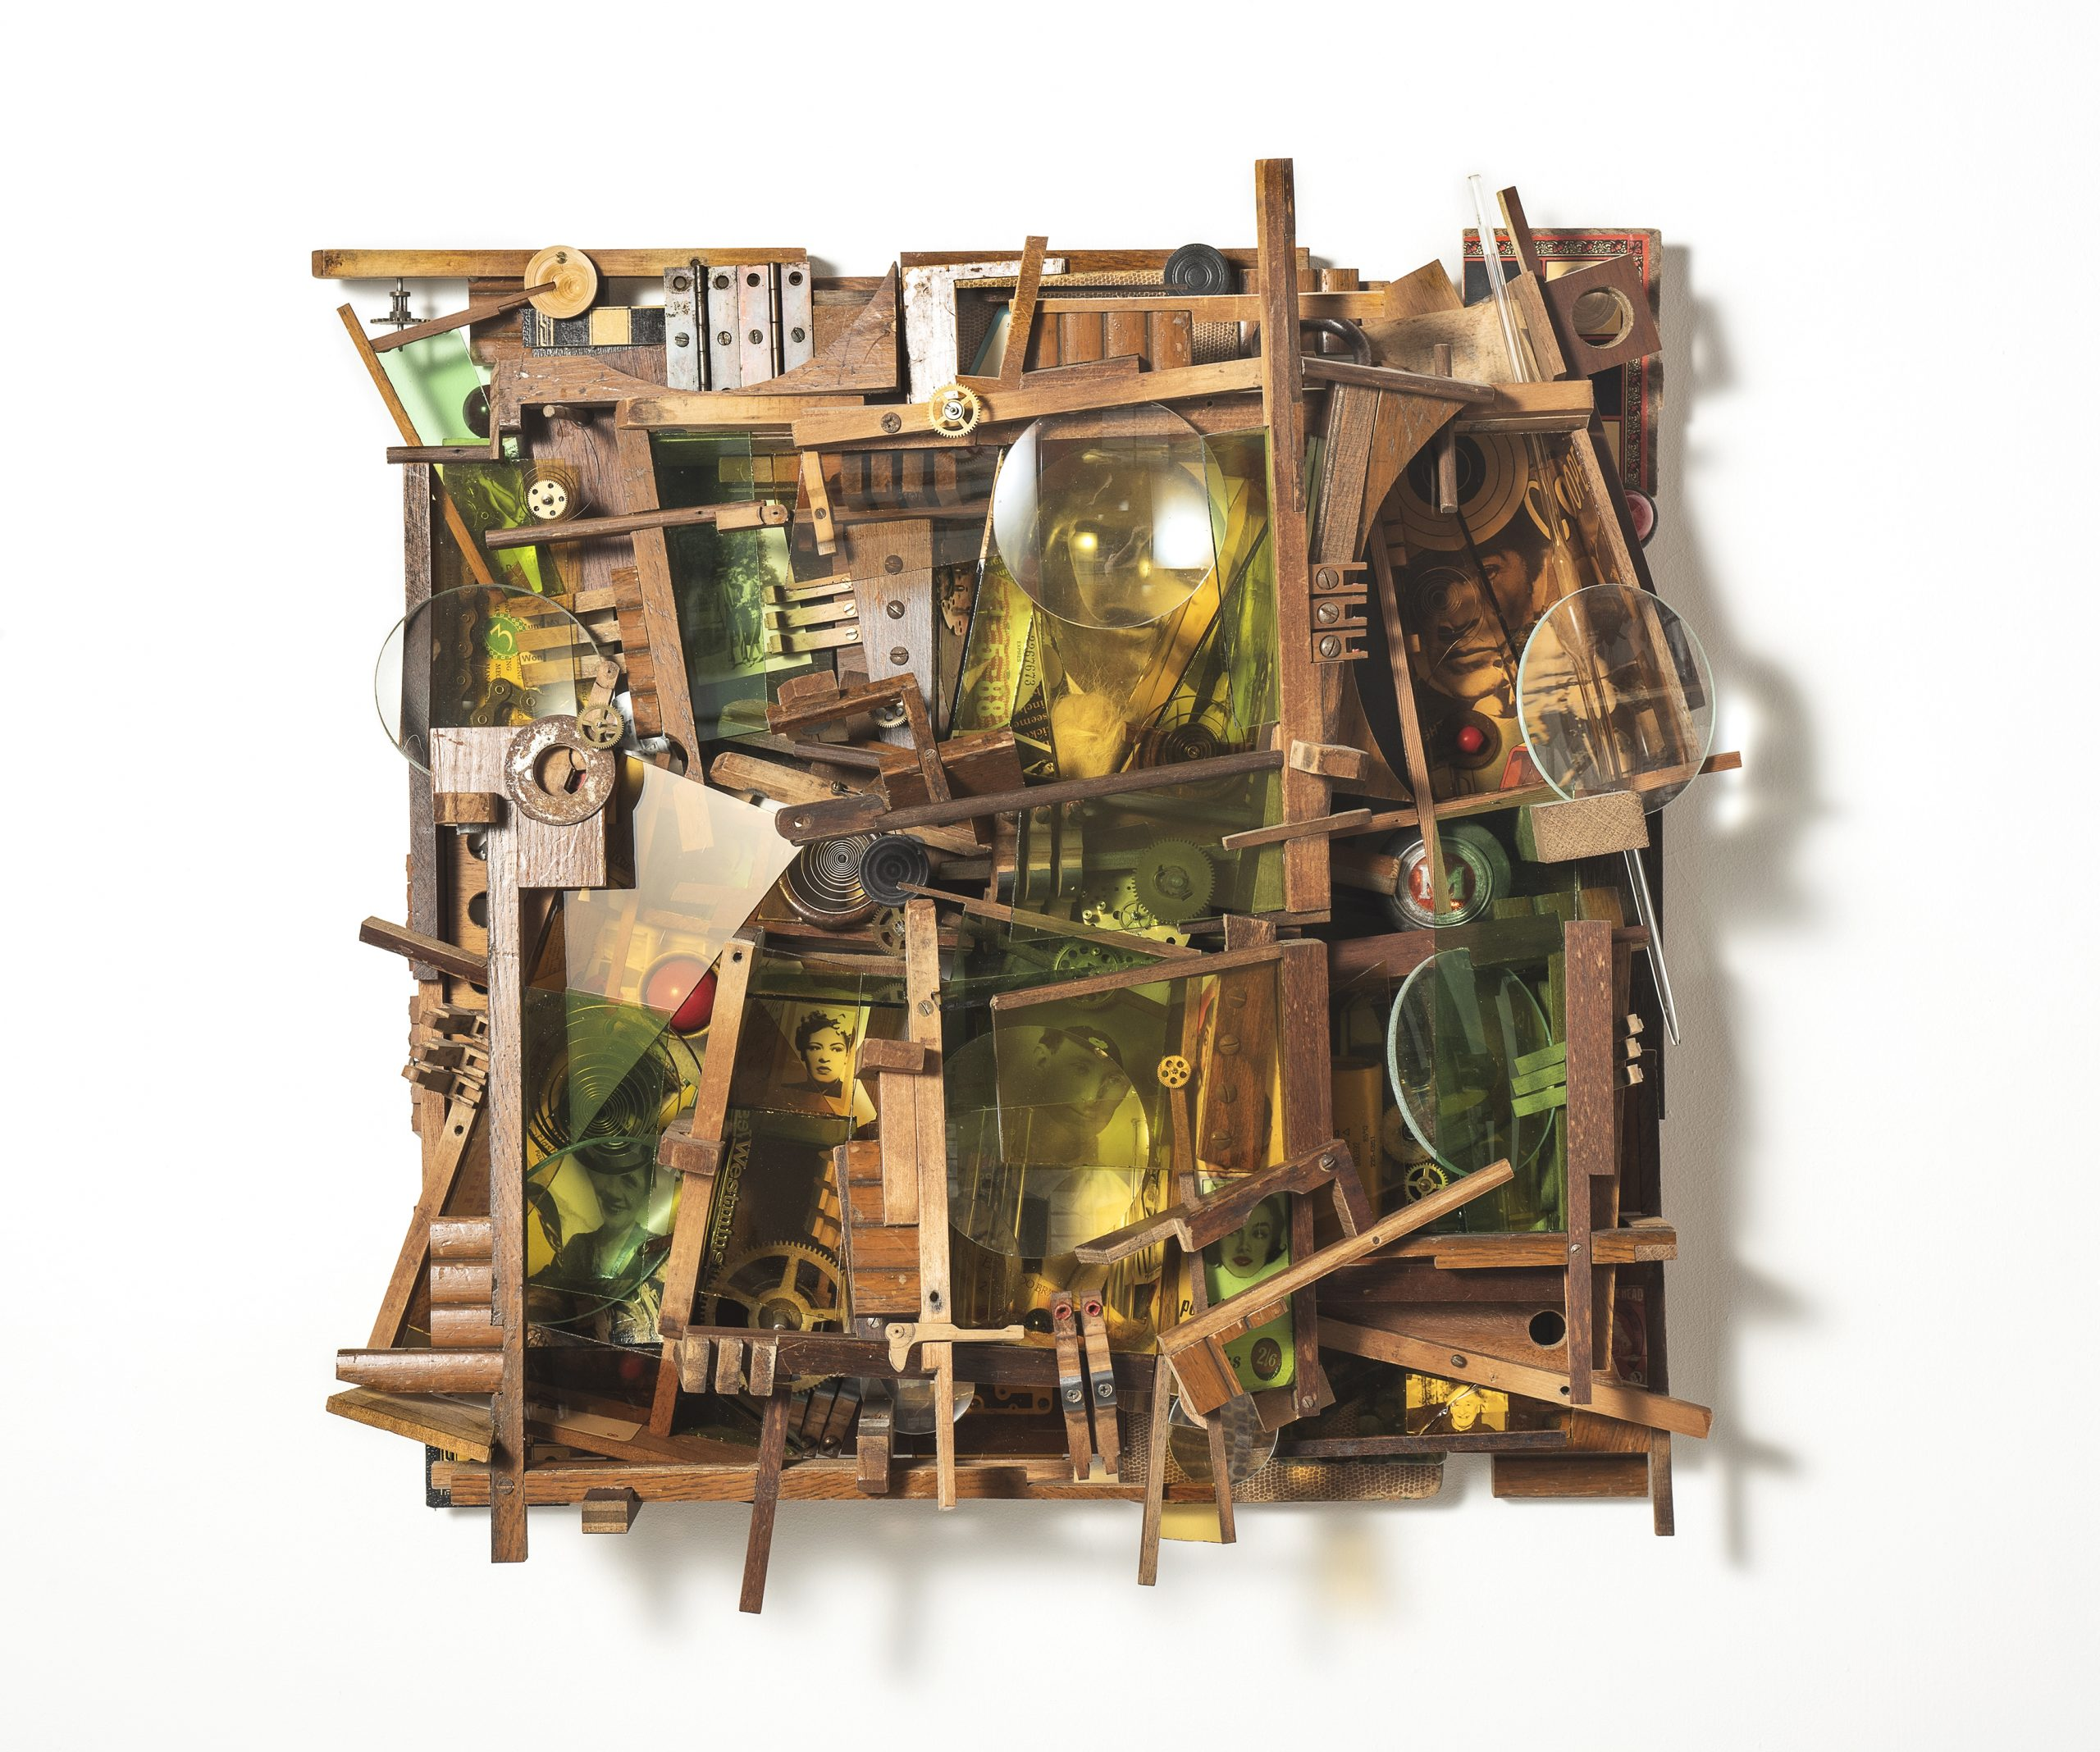 A box construction by Lesley Hilling